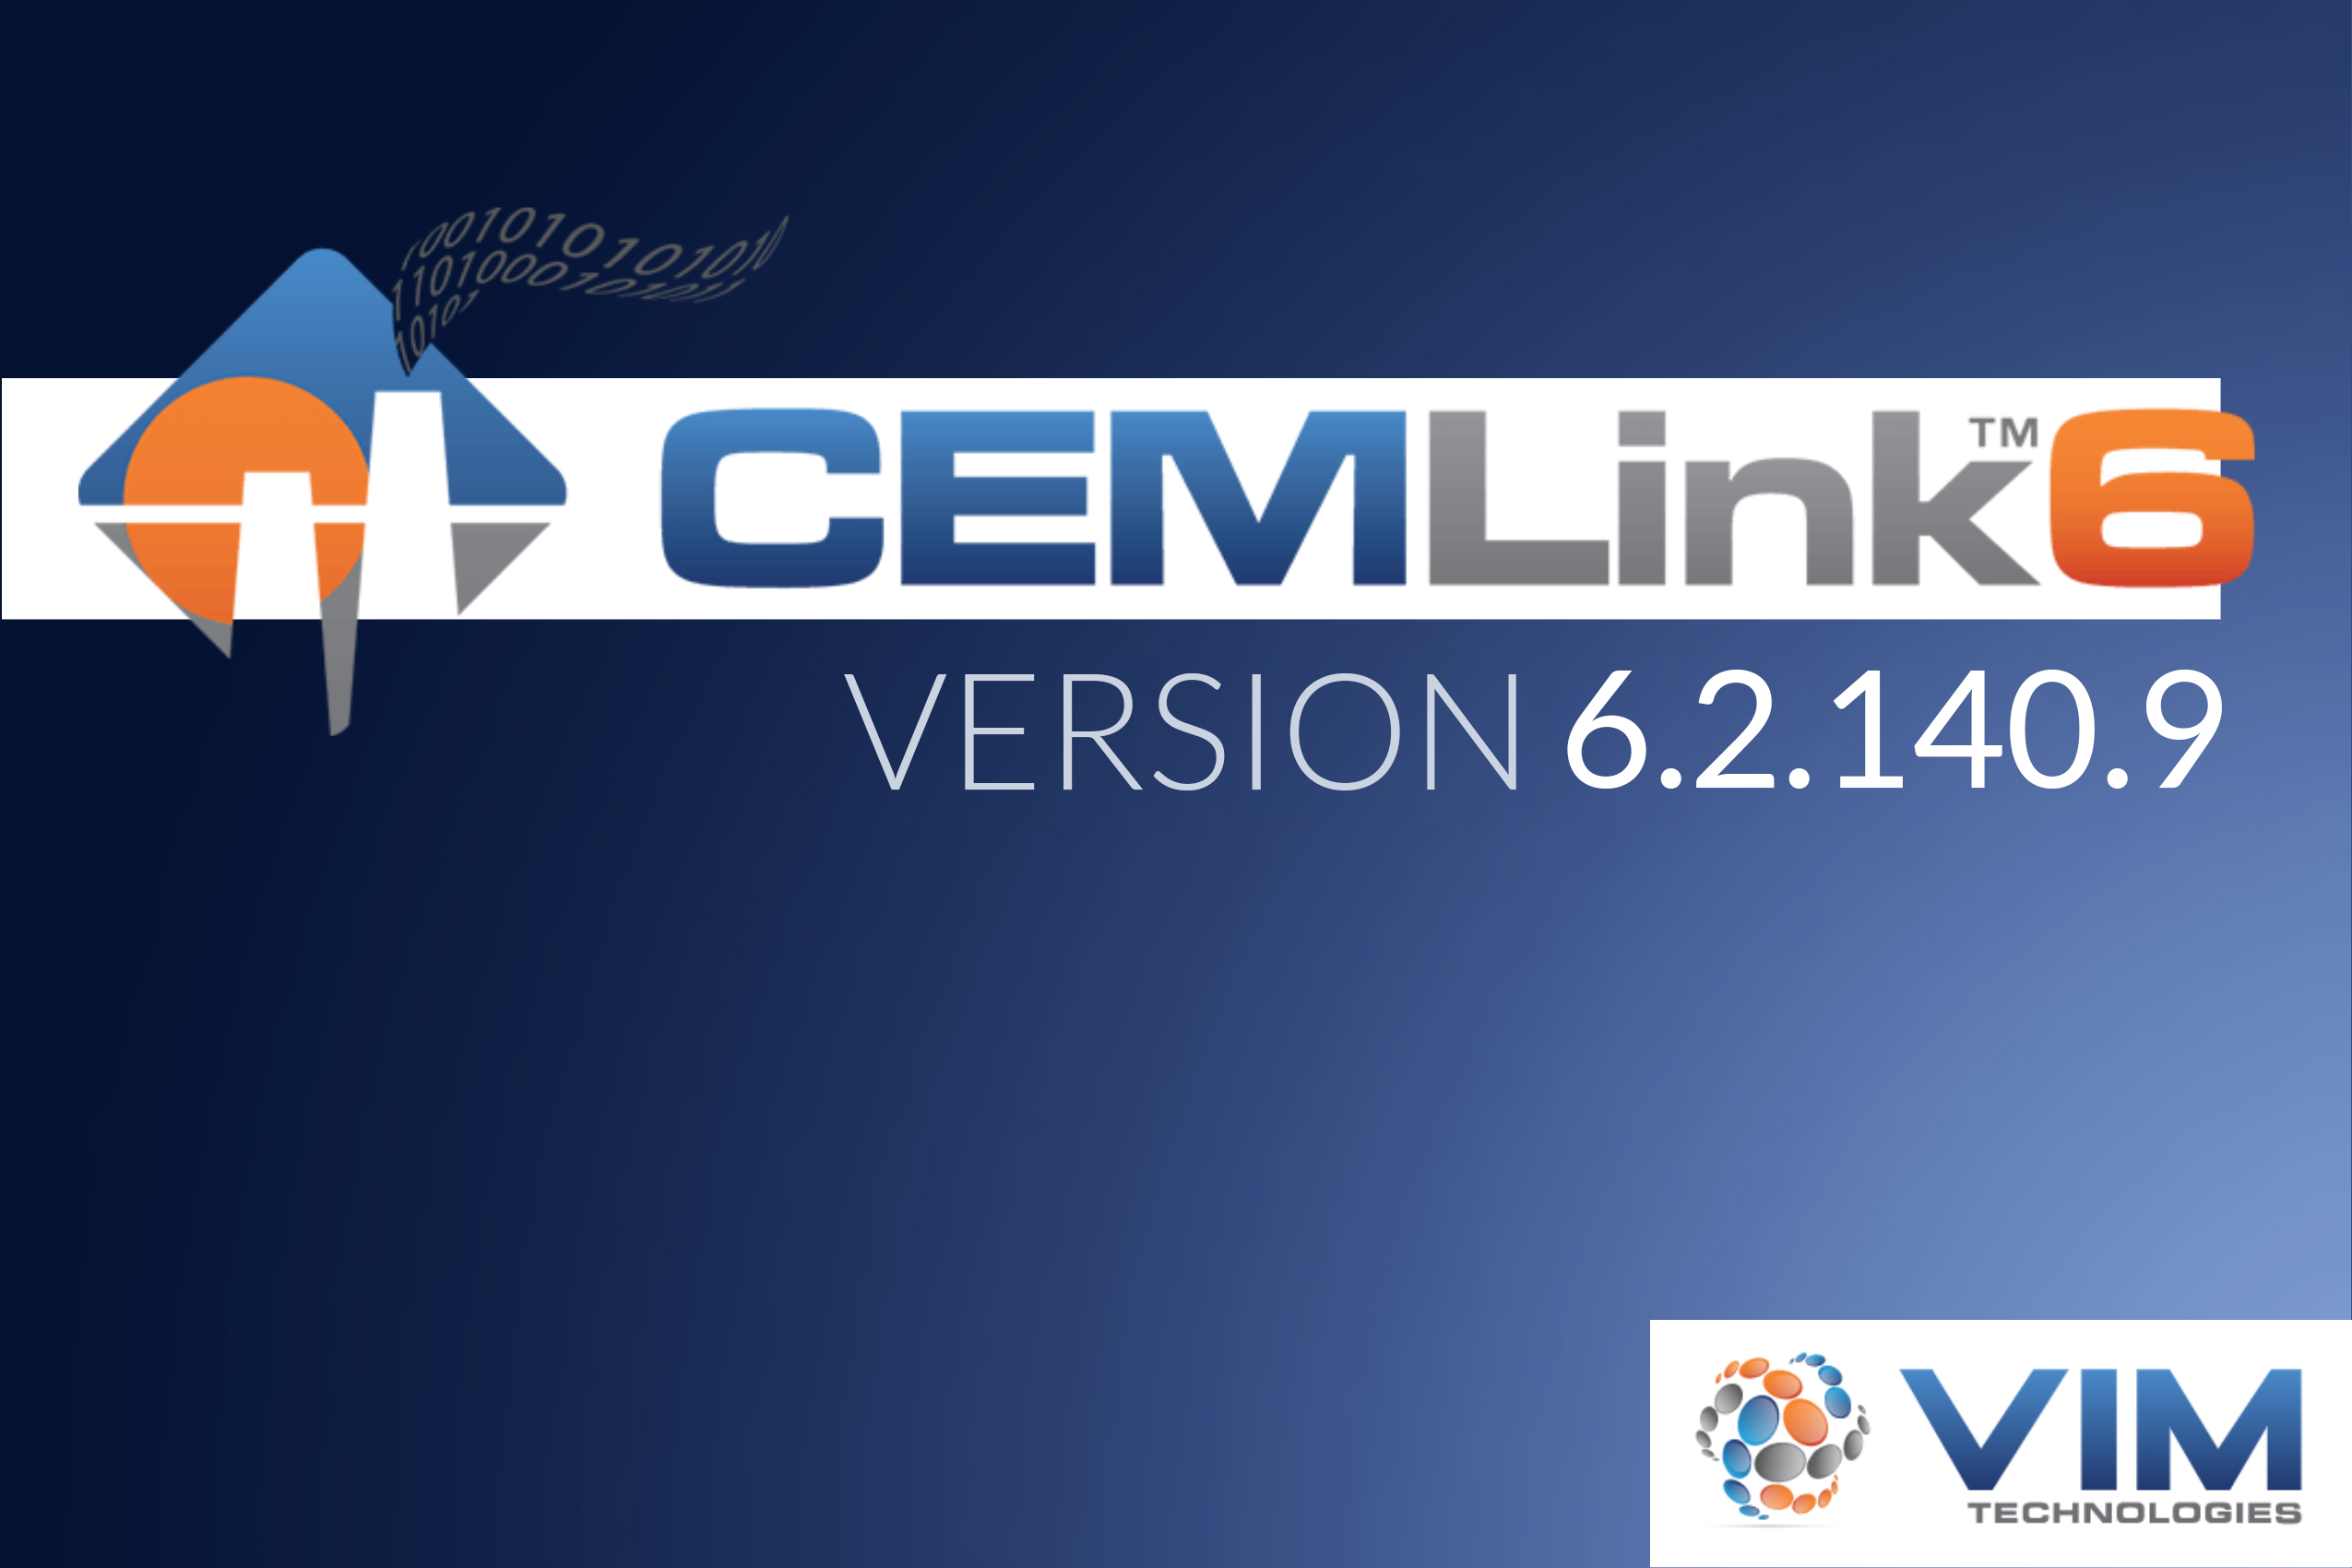 Version 6.2.140.9 of CEMLink6 Now Available